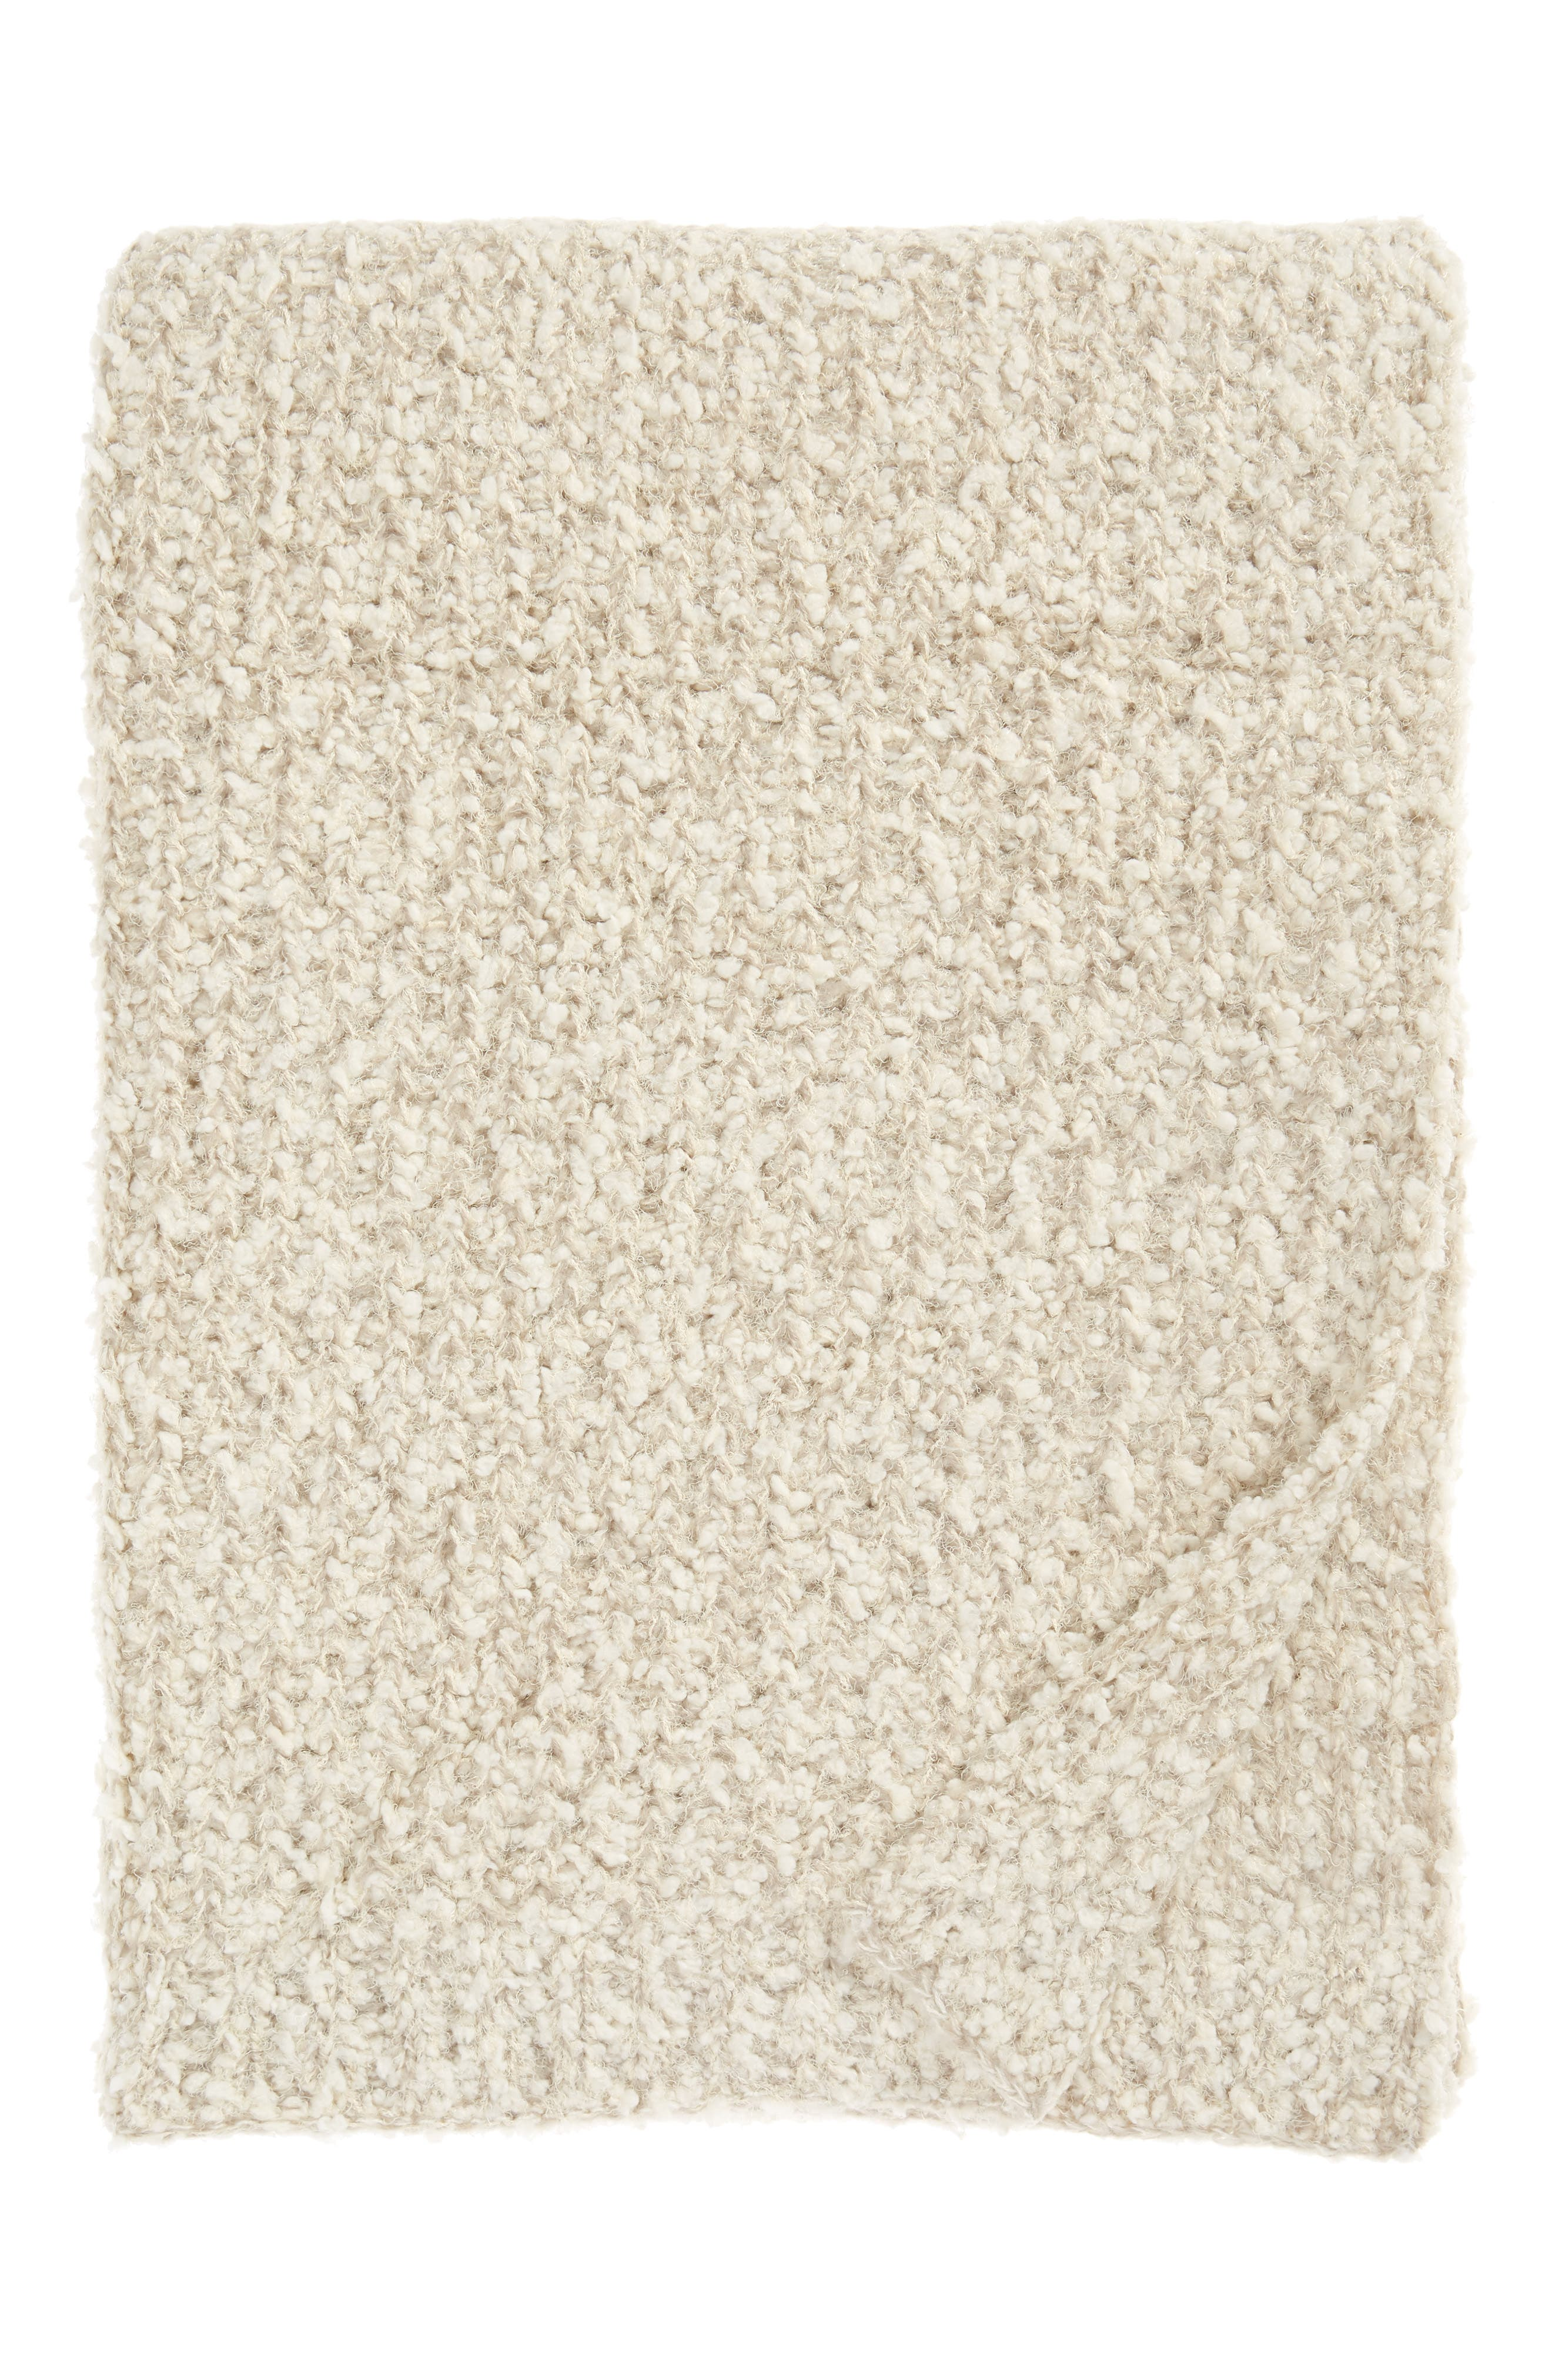 Image of Nordstrom Lyla Knit Throw